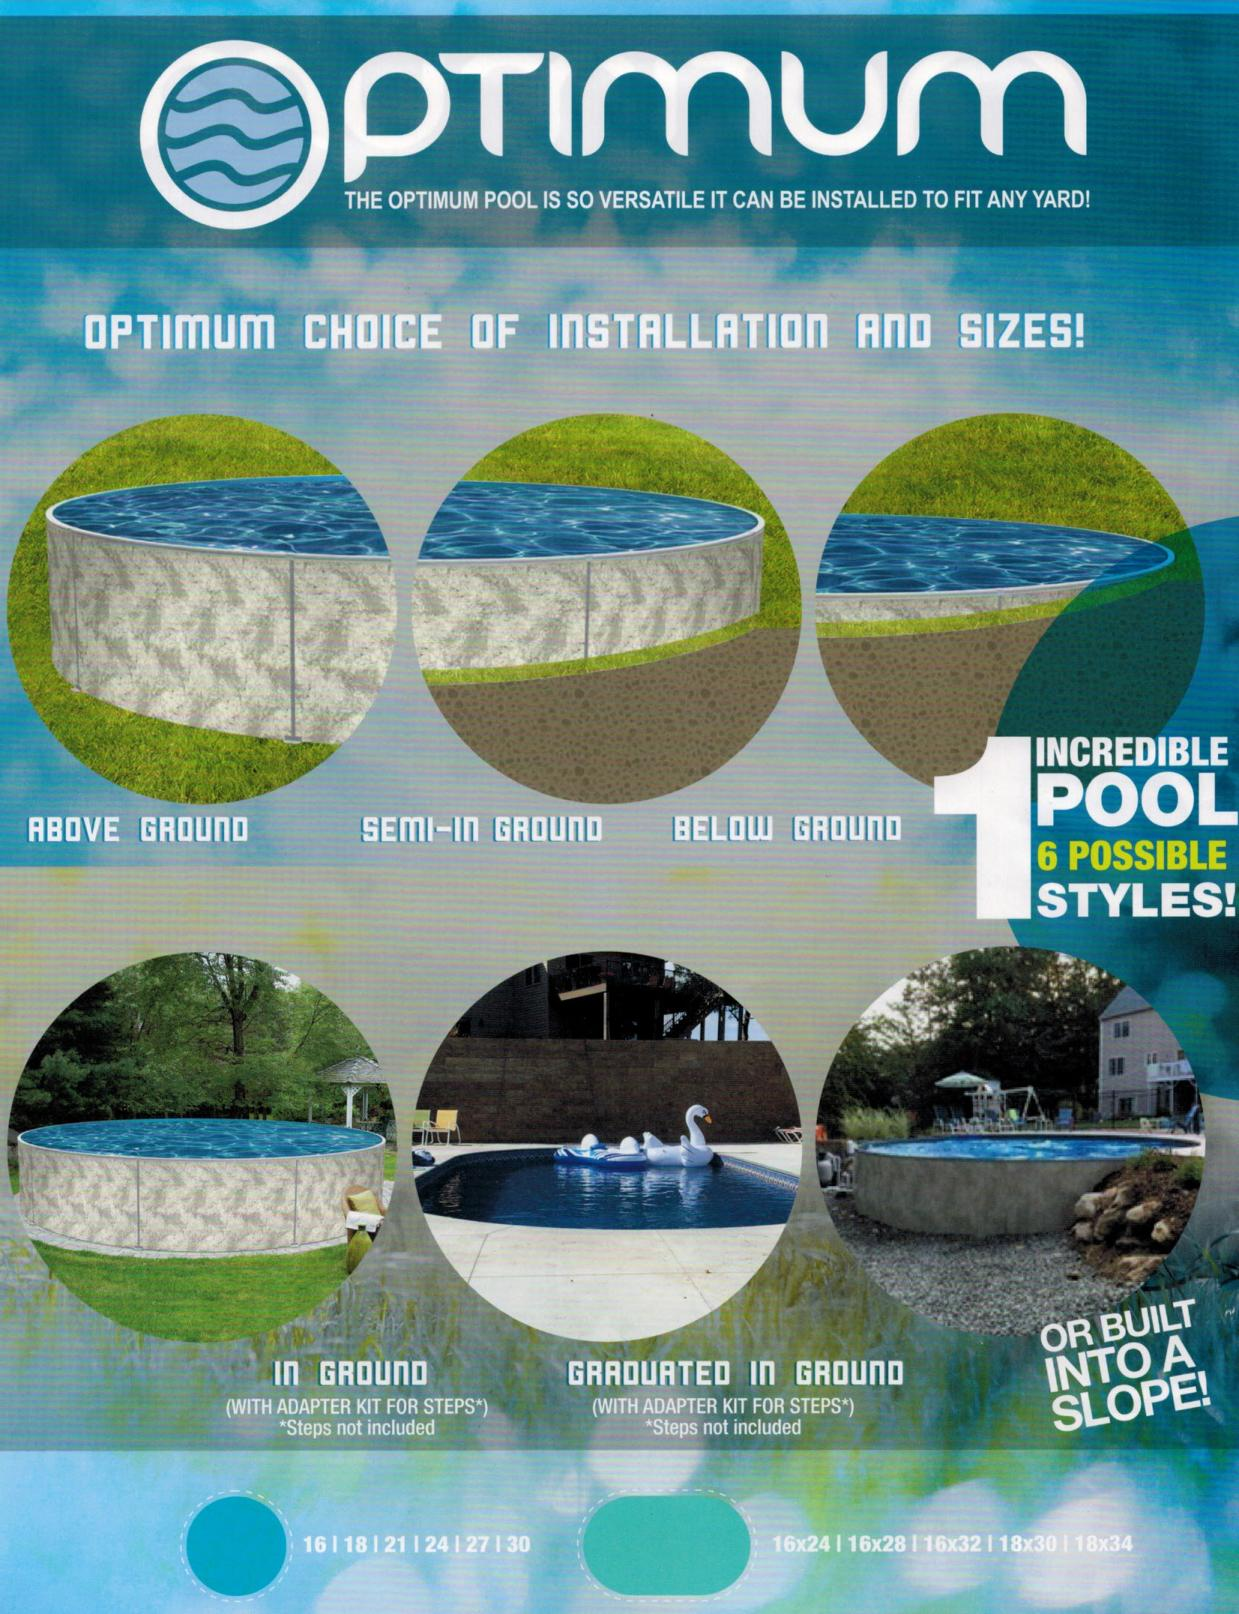 North Eastern Pools Types of pools chart